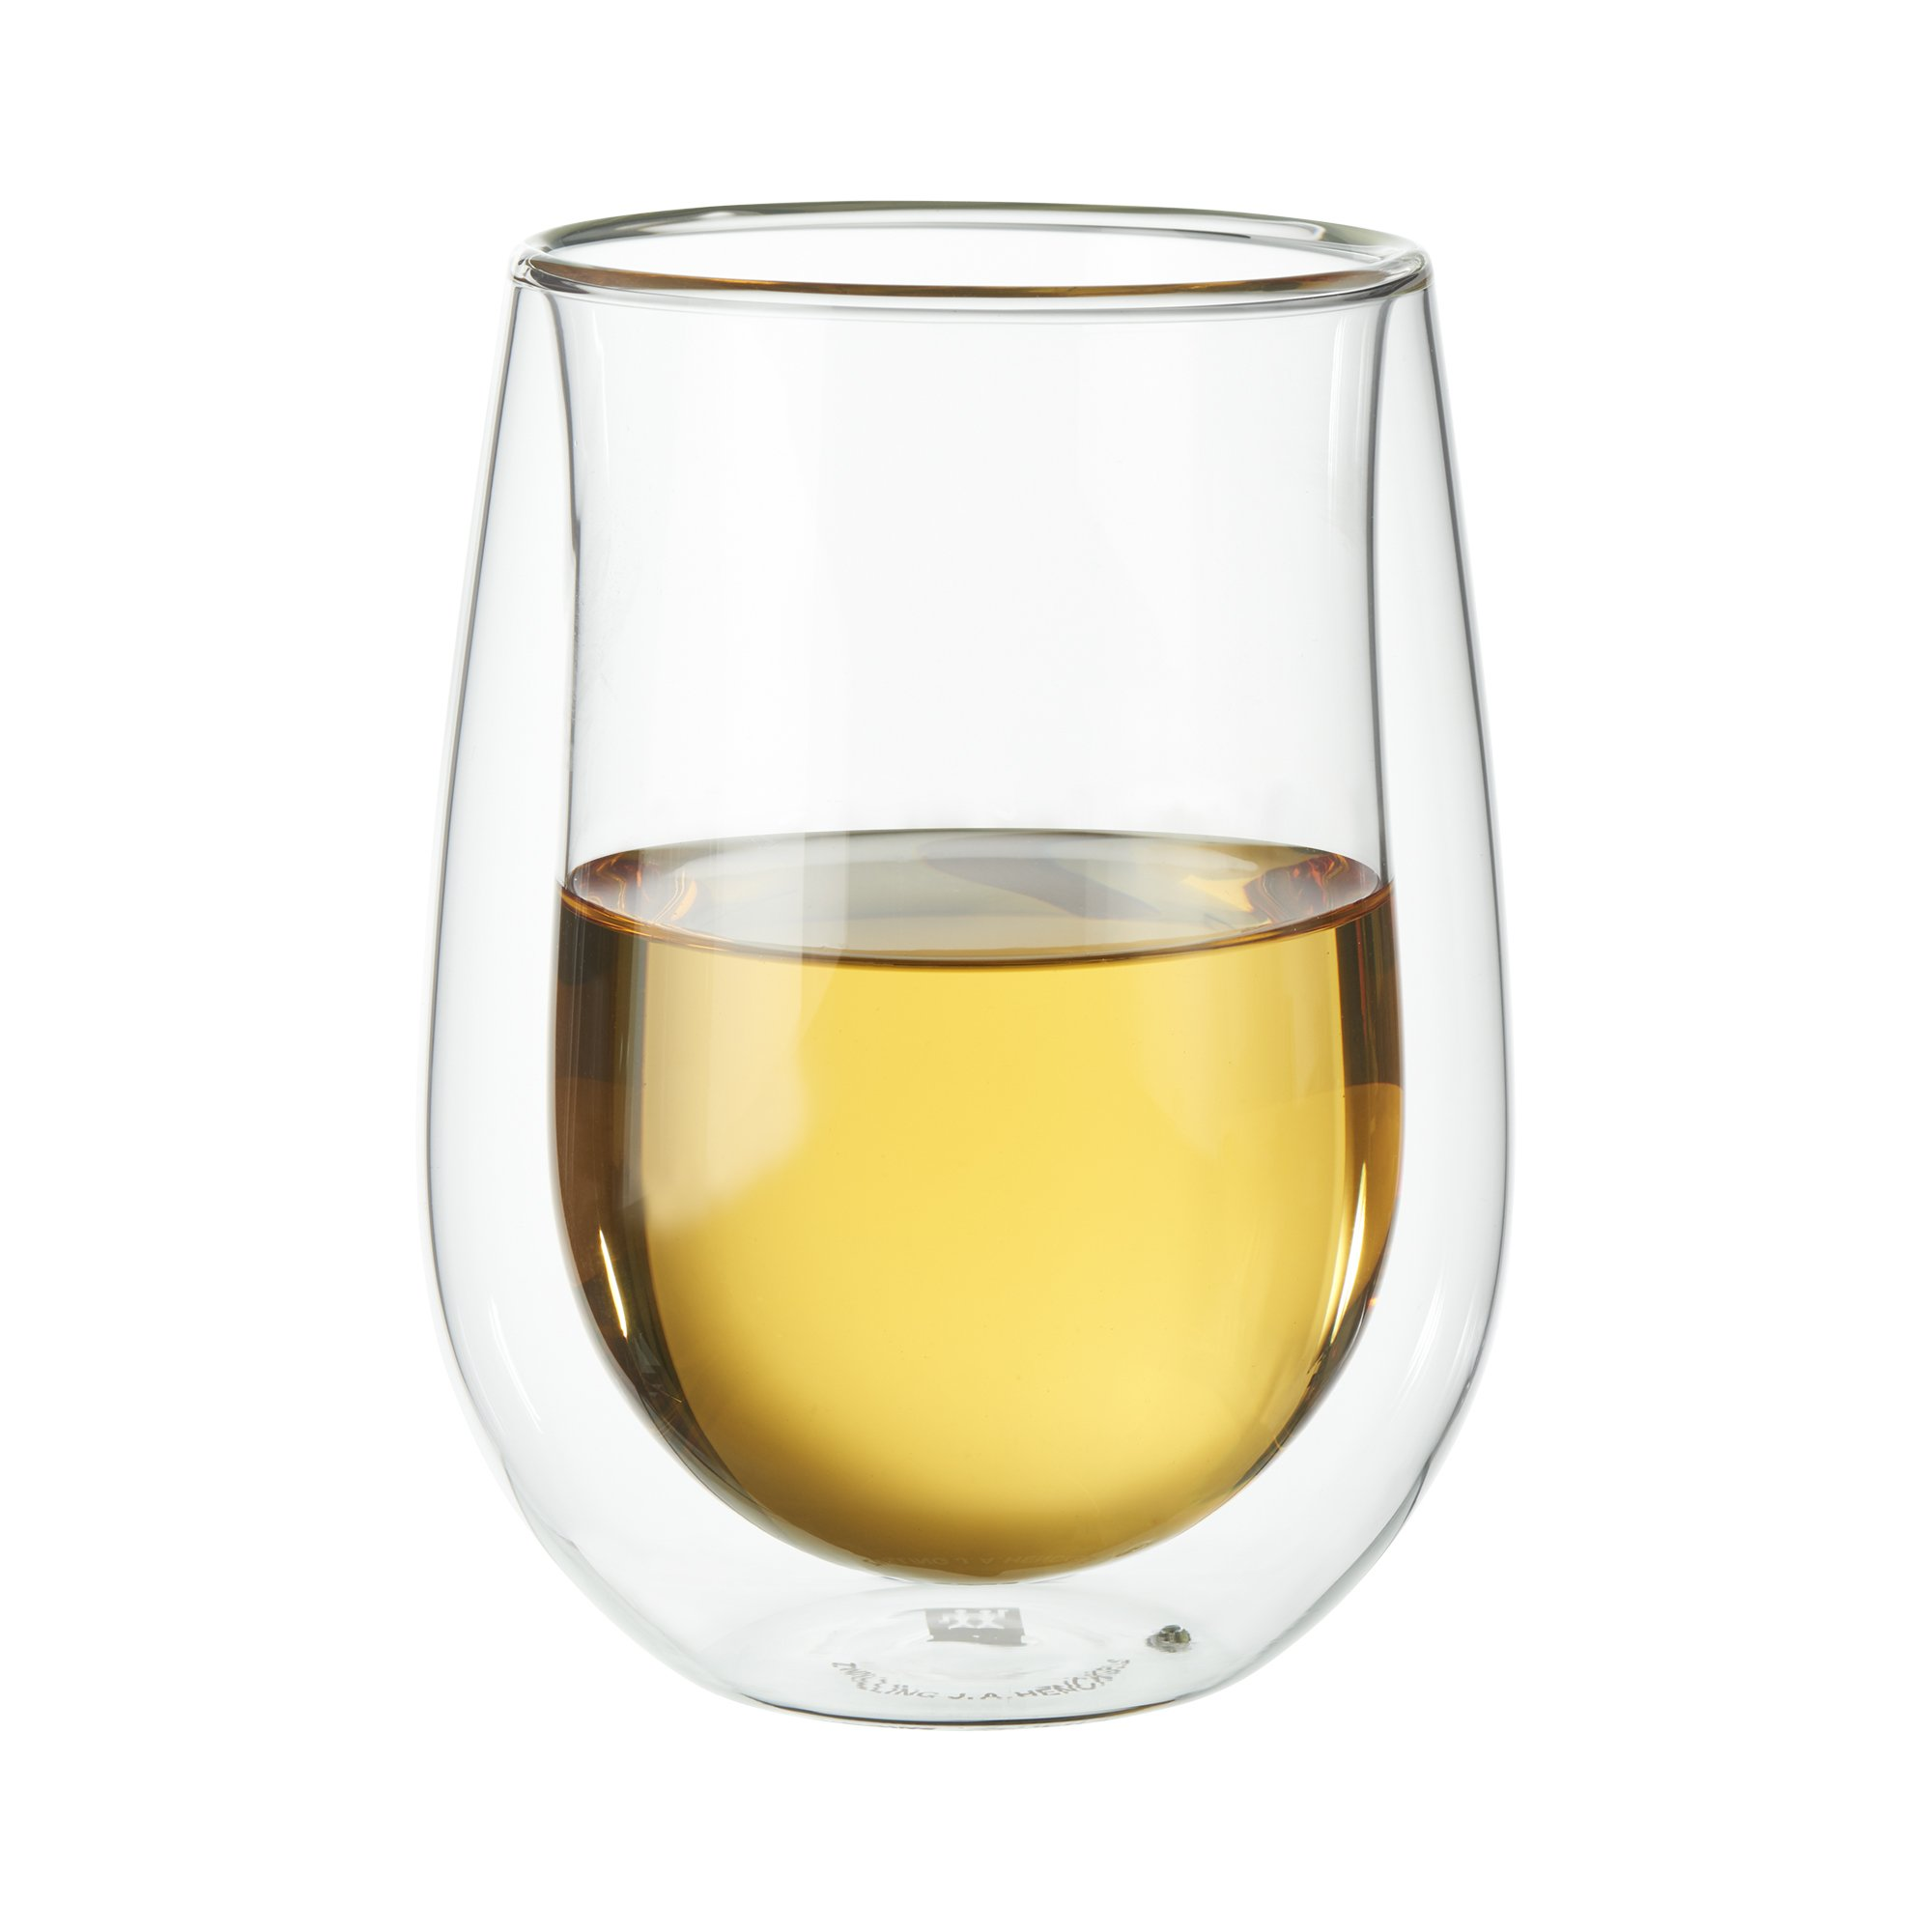 ZWILLING J.A. Henckels 39500-212 Double-Wall Stemless Wine Glass Set, 10 fl. oz, White